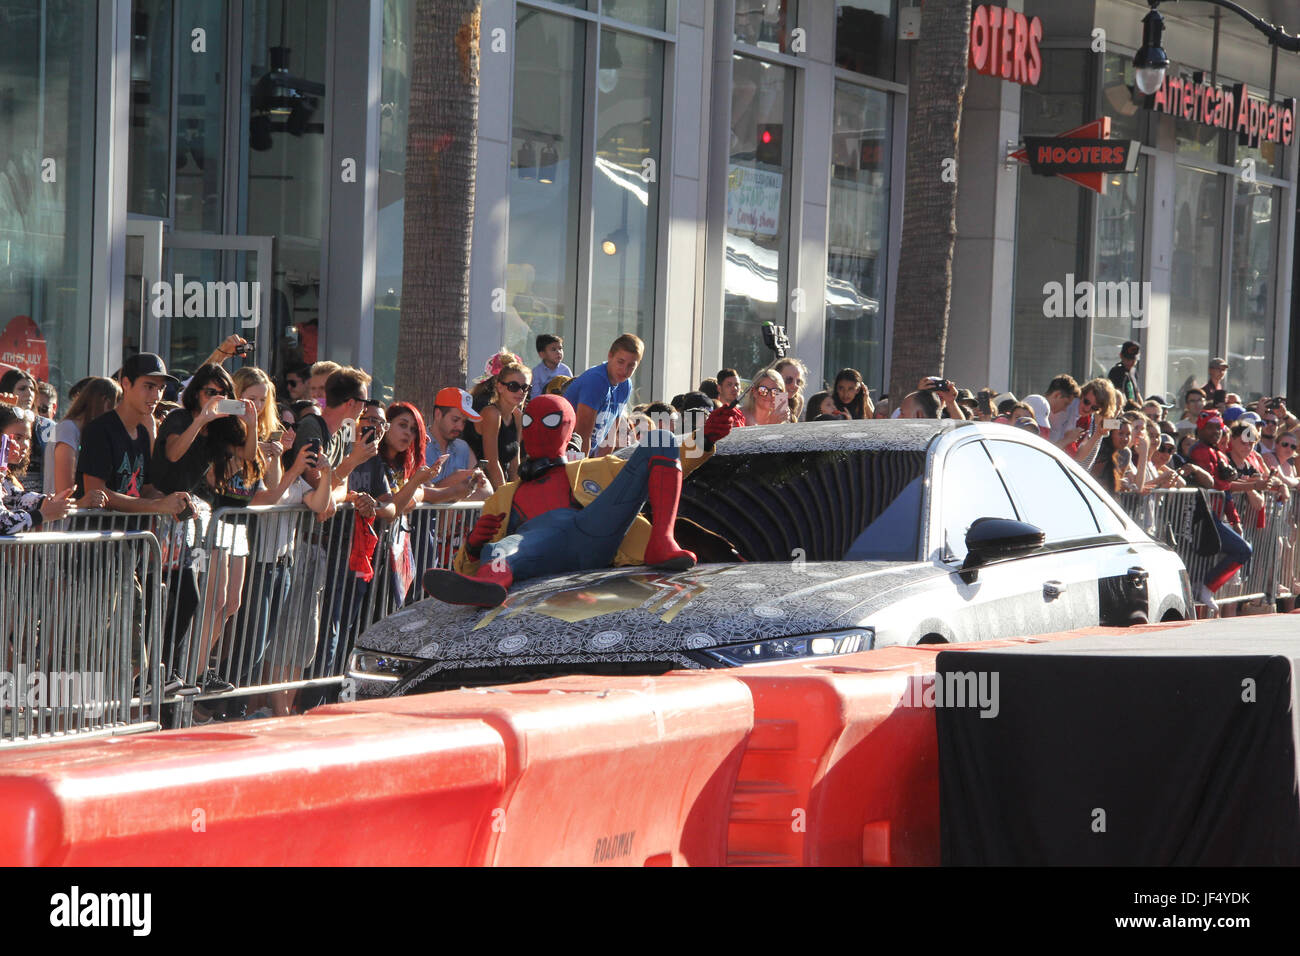 "06/28/2017 The World Premiere of ""Spider-Man: Homecoming"" held at the TCL Chinese Theatre in Los Angeles, CA   Photo: Stock Photo"